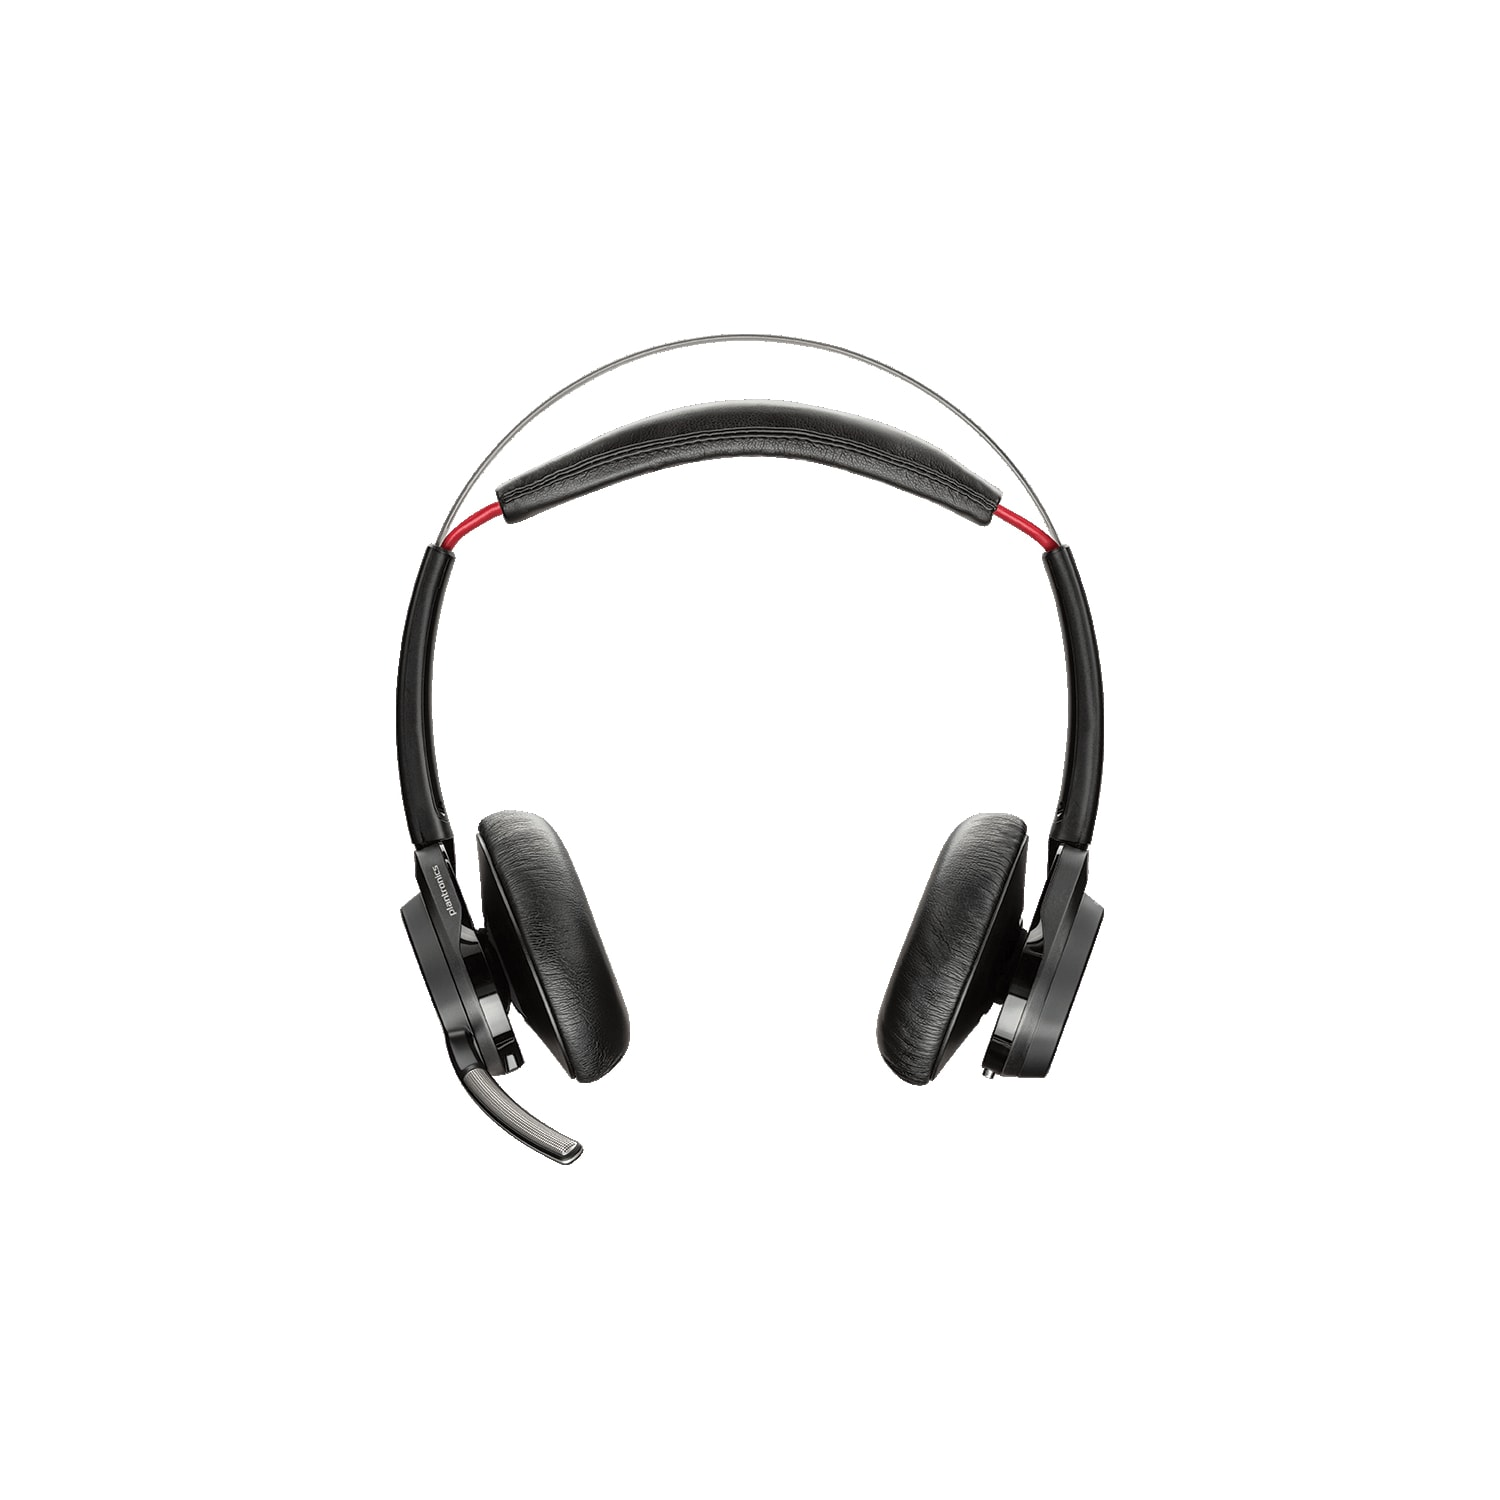 998a7ce19e4 Plantronics Voyager Focus UC B825-M Wireless Bluetooth Stereo Headset - Over -the-